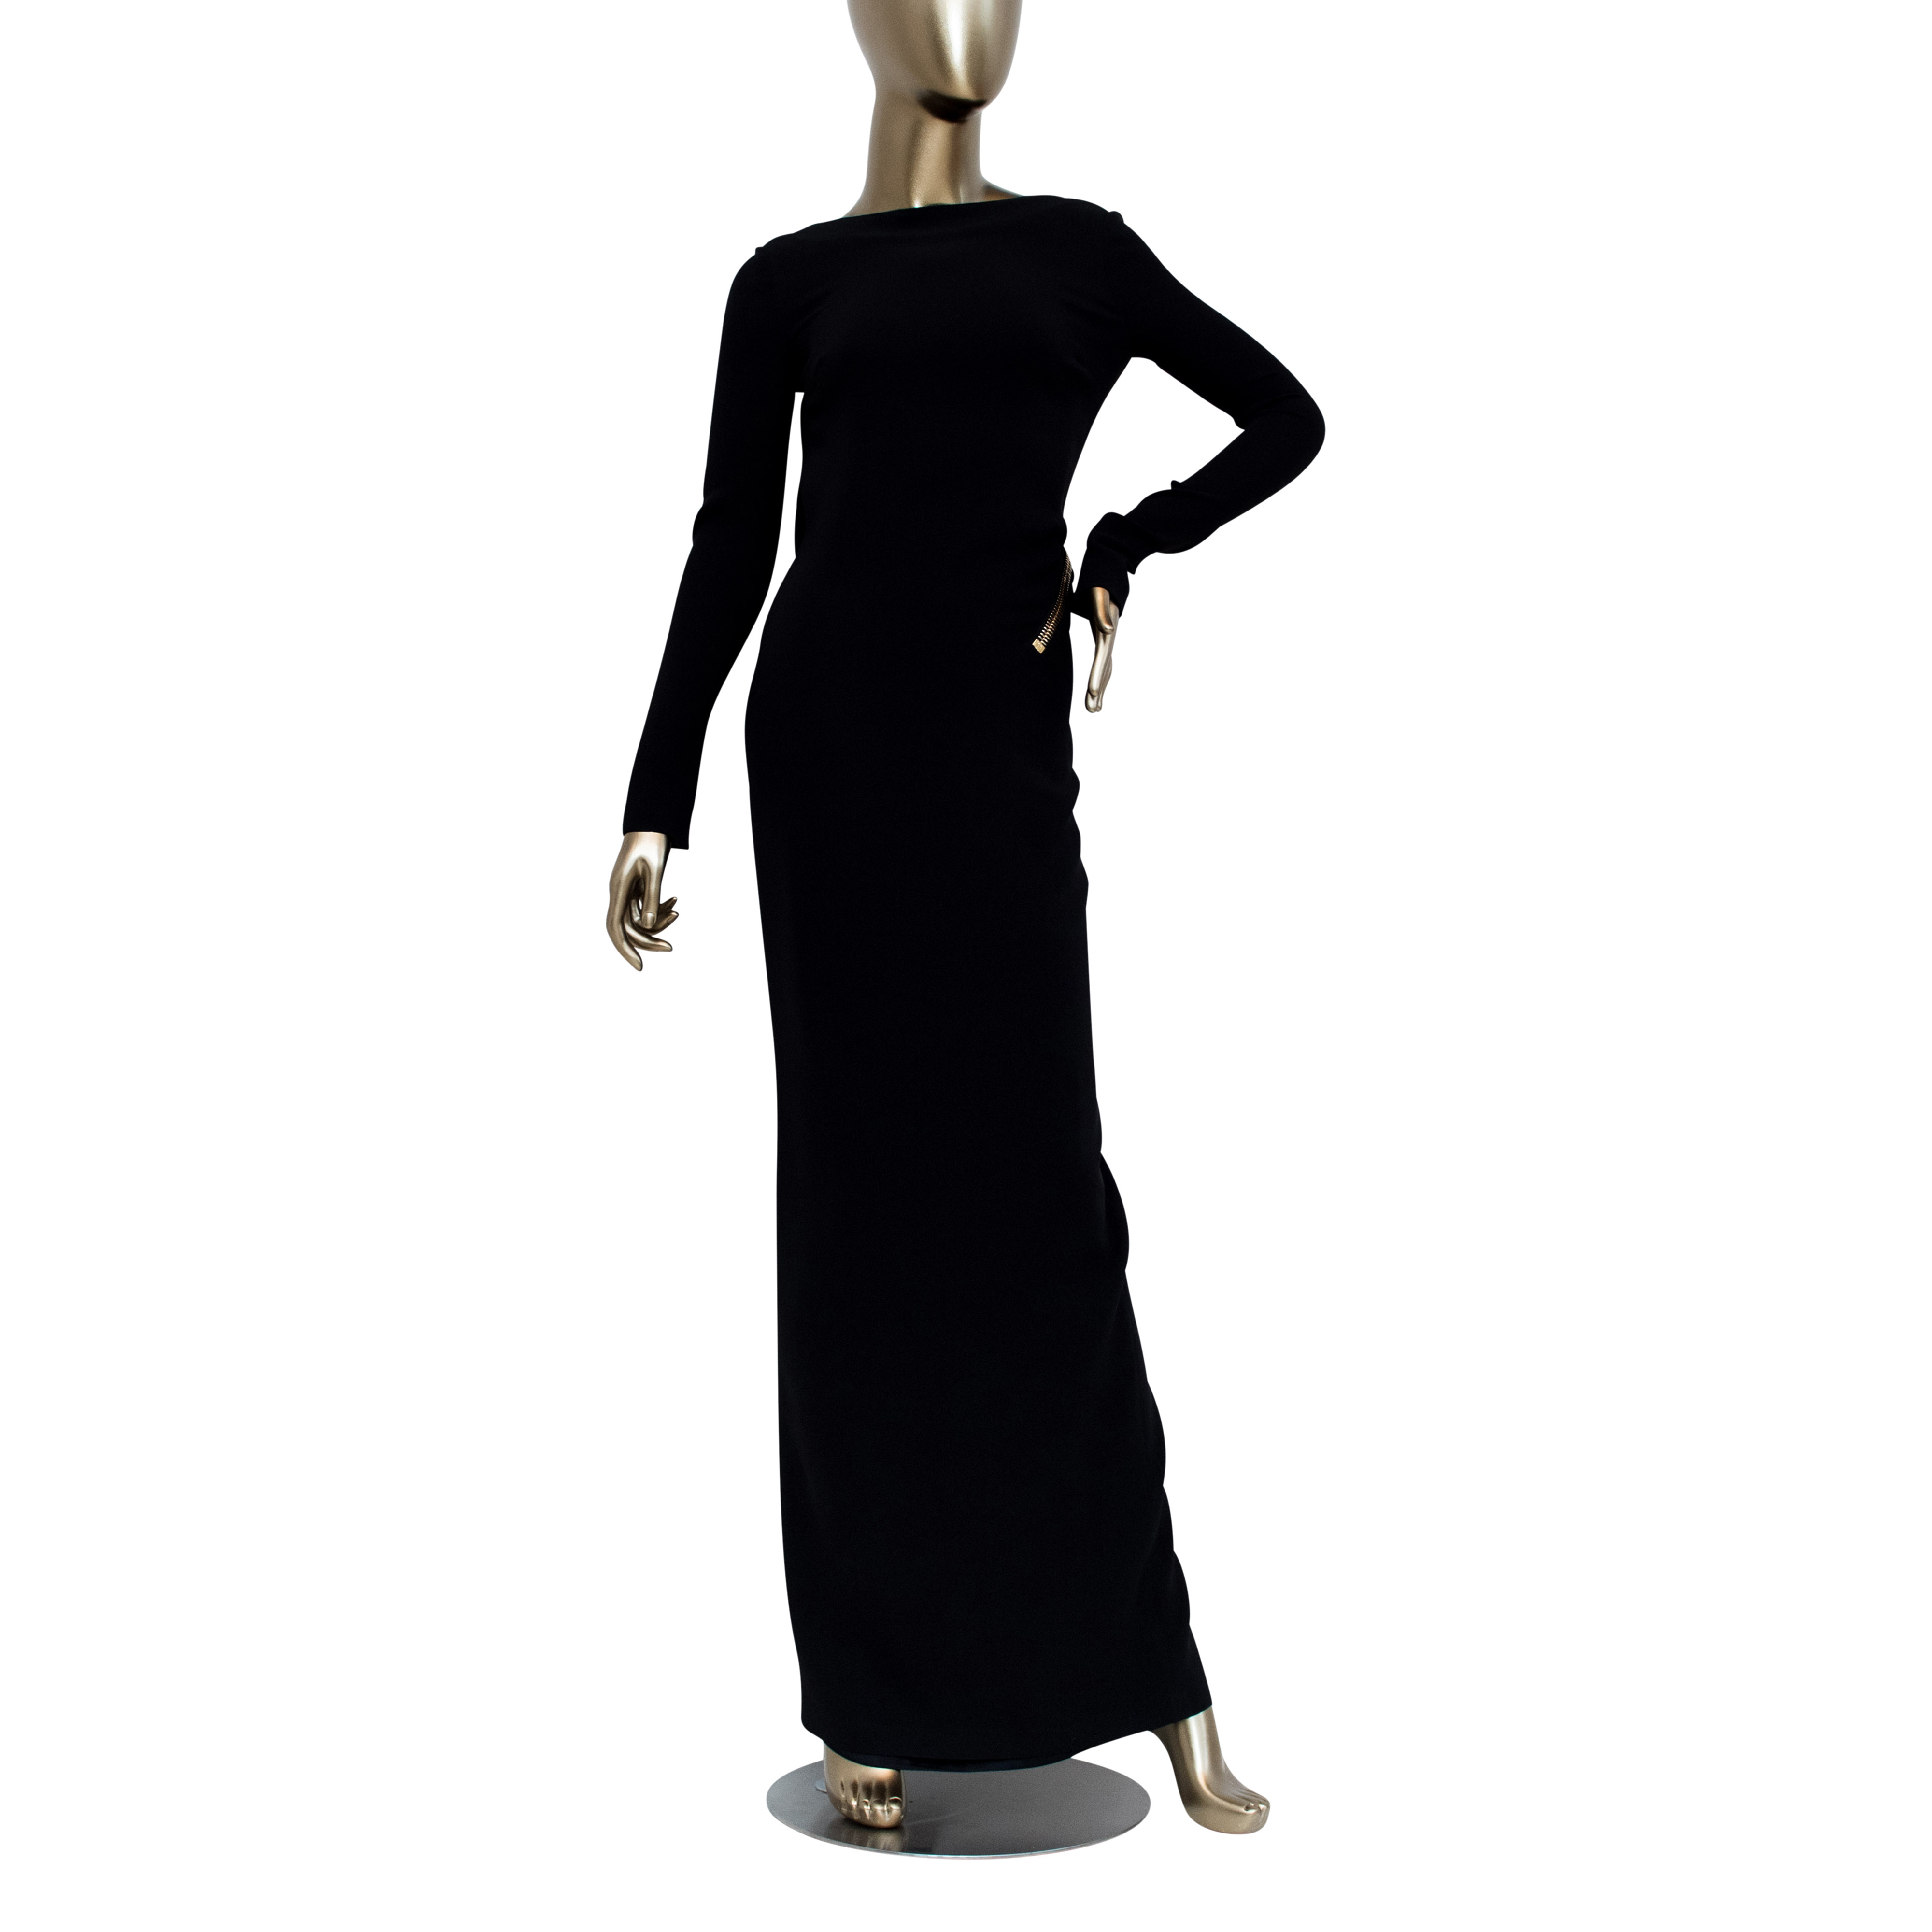 c1c208d4ac2a6 Tom Ford Zipper Trimmed Evening Gown - By:Fashionaholic